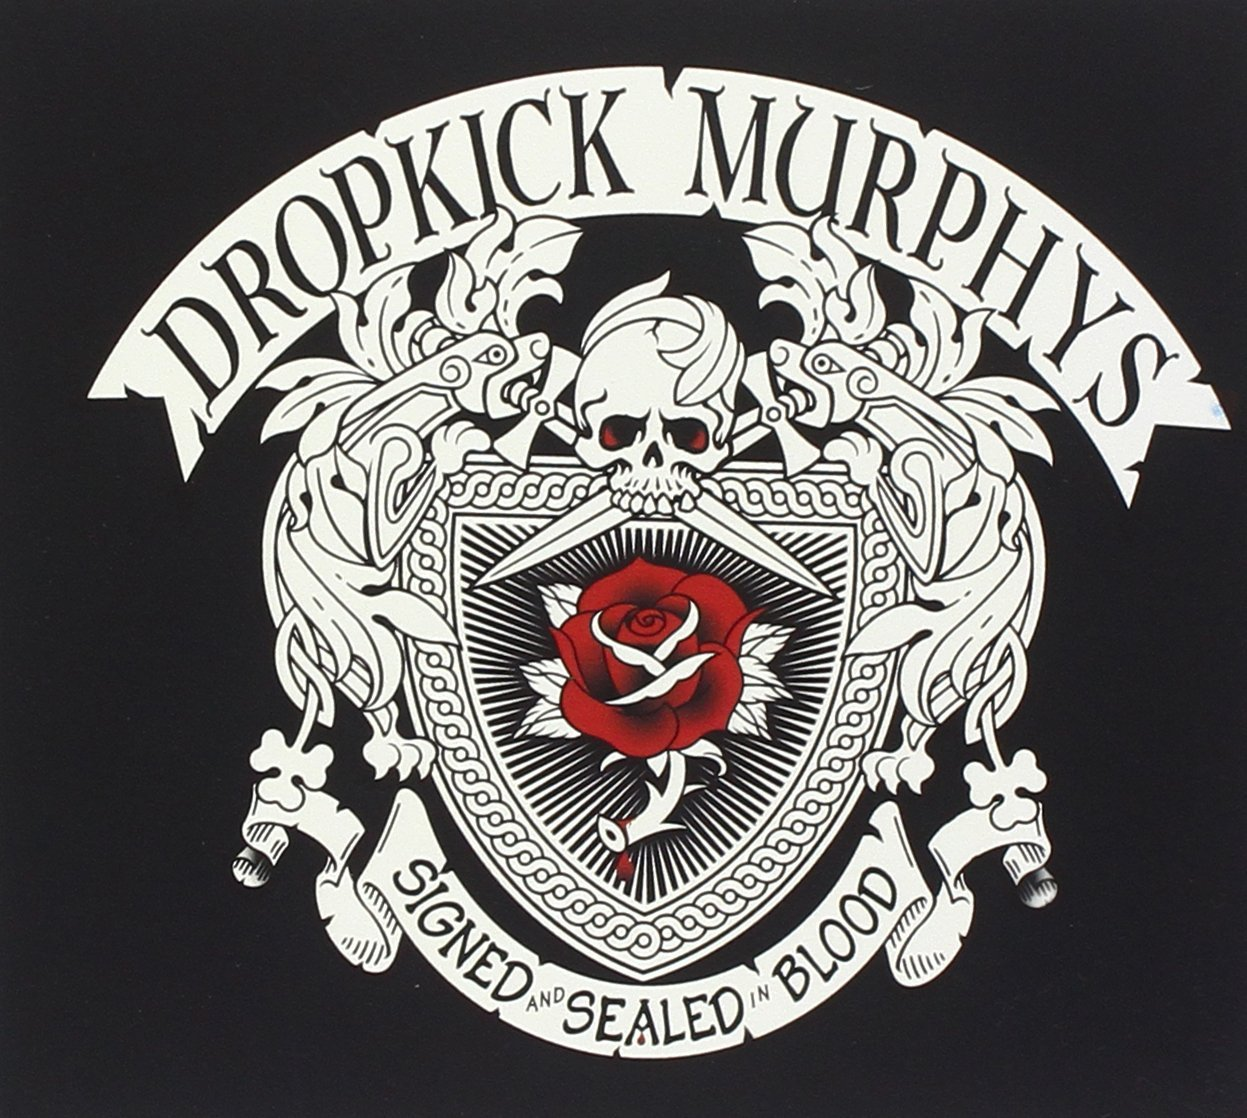 DROPKICK MURPHYS - SIGNED AND SEALED IN BLOOD (CD)